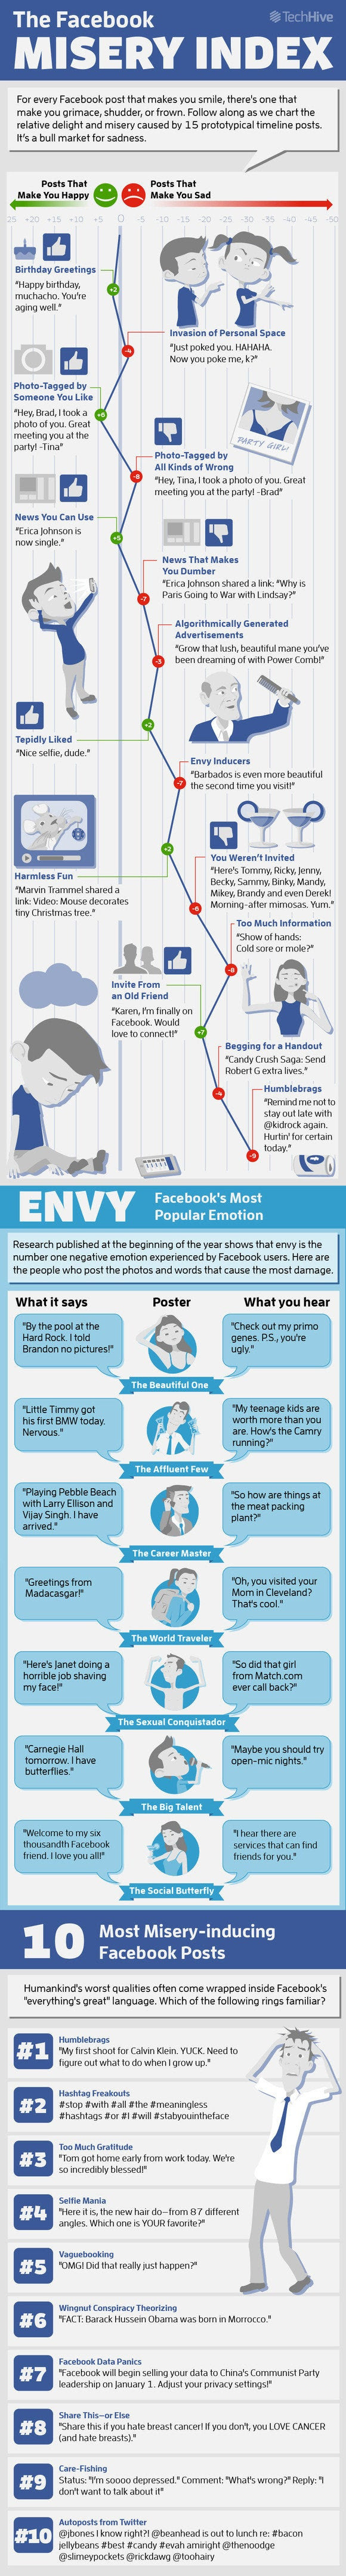 How Bad Facebook Makes You Feel - Facebook Misery Index [INFOGRAPHIC]